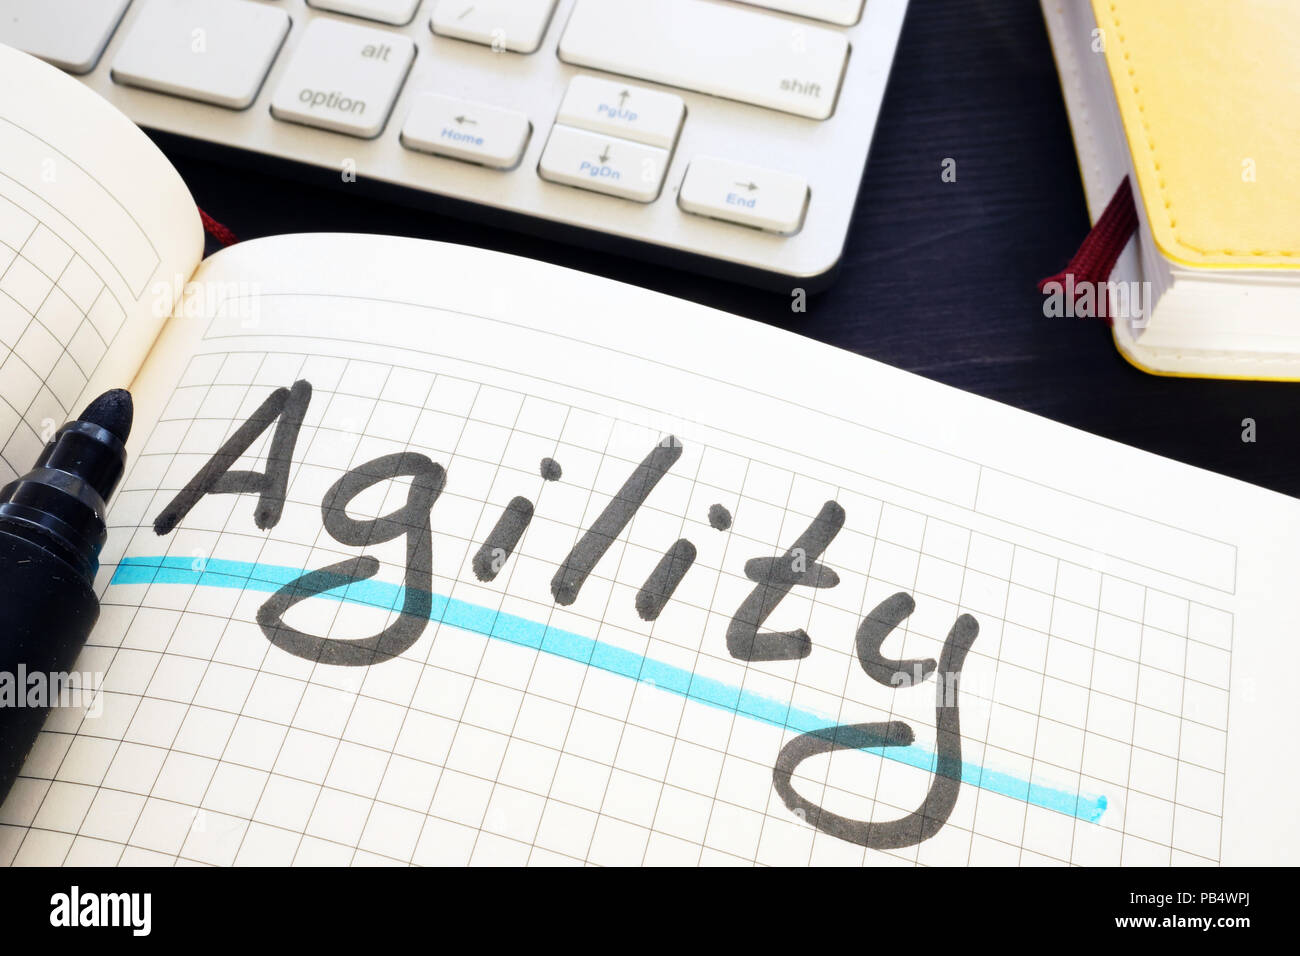 Agility written by hand in a note. - Stock Image